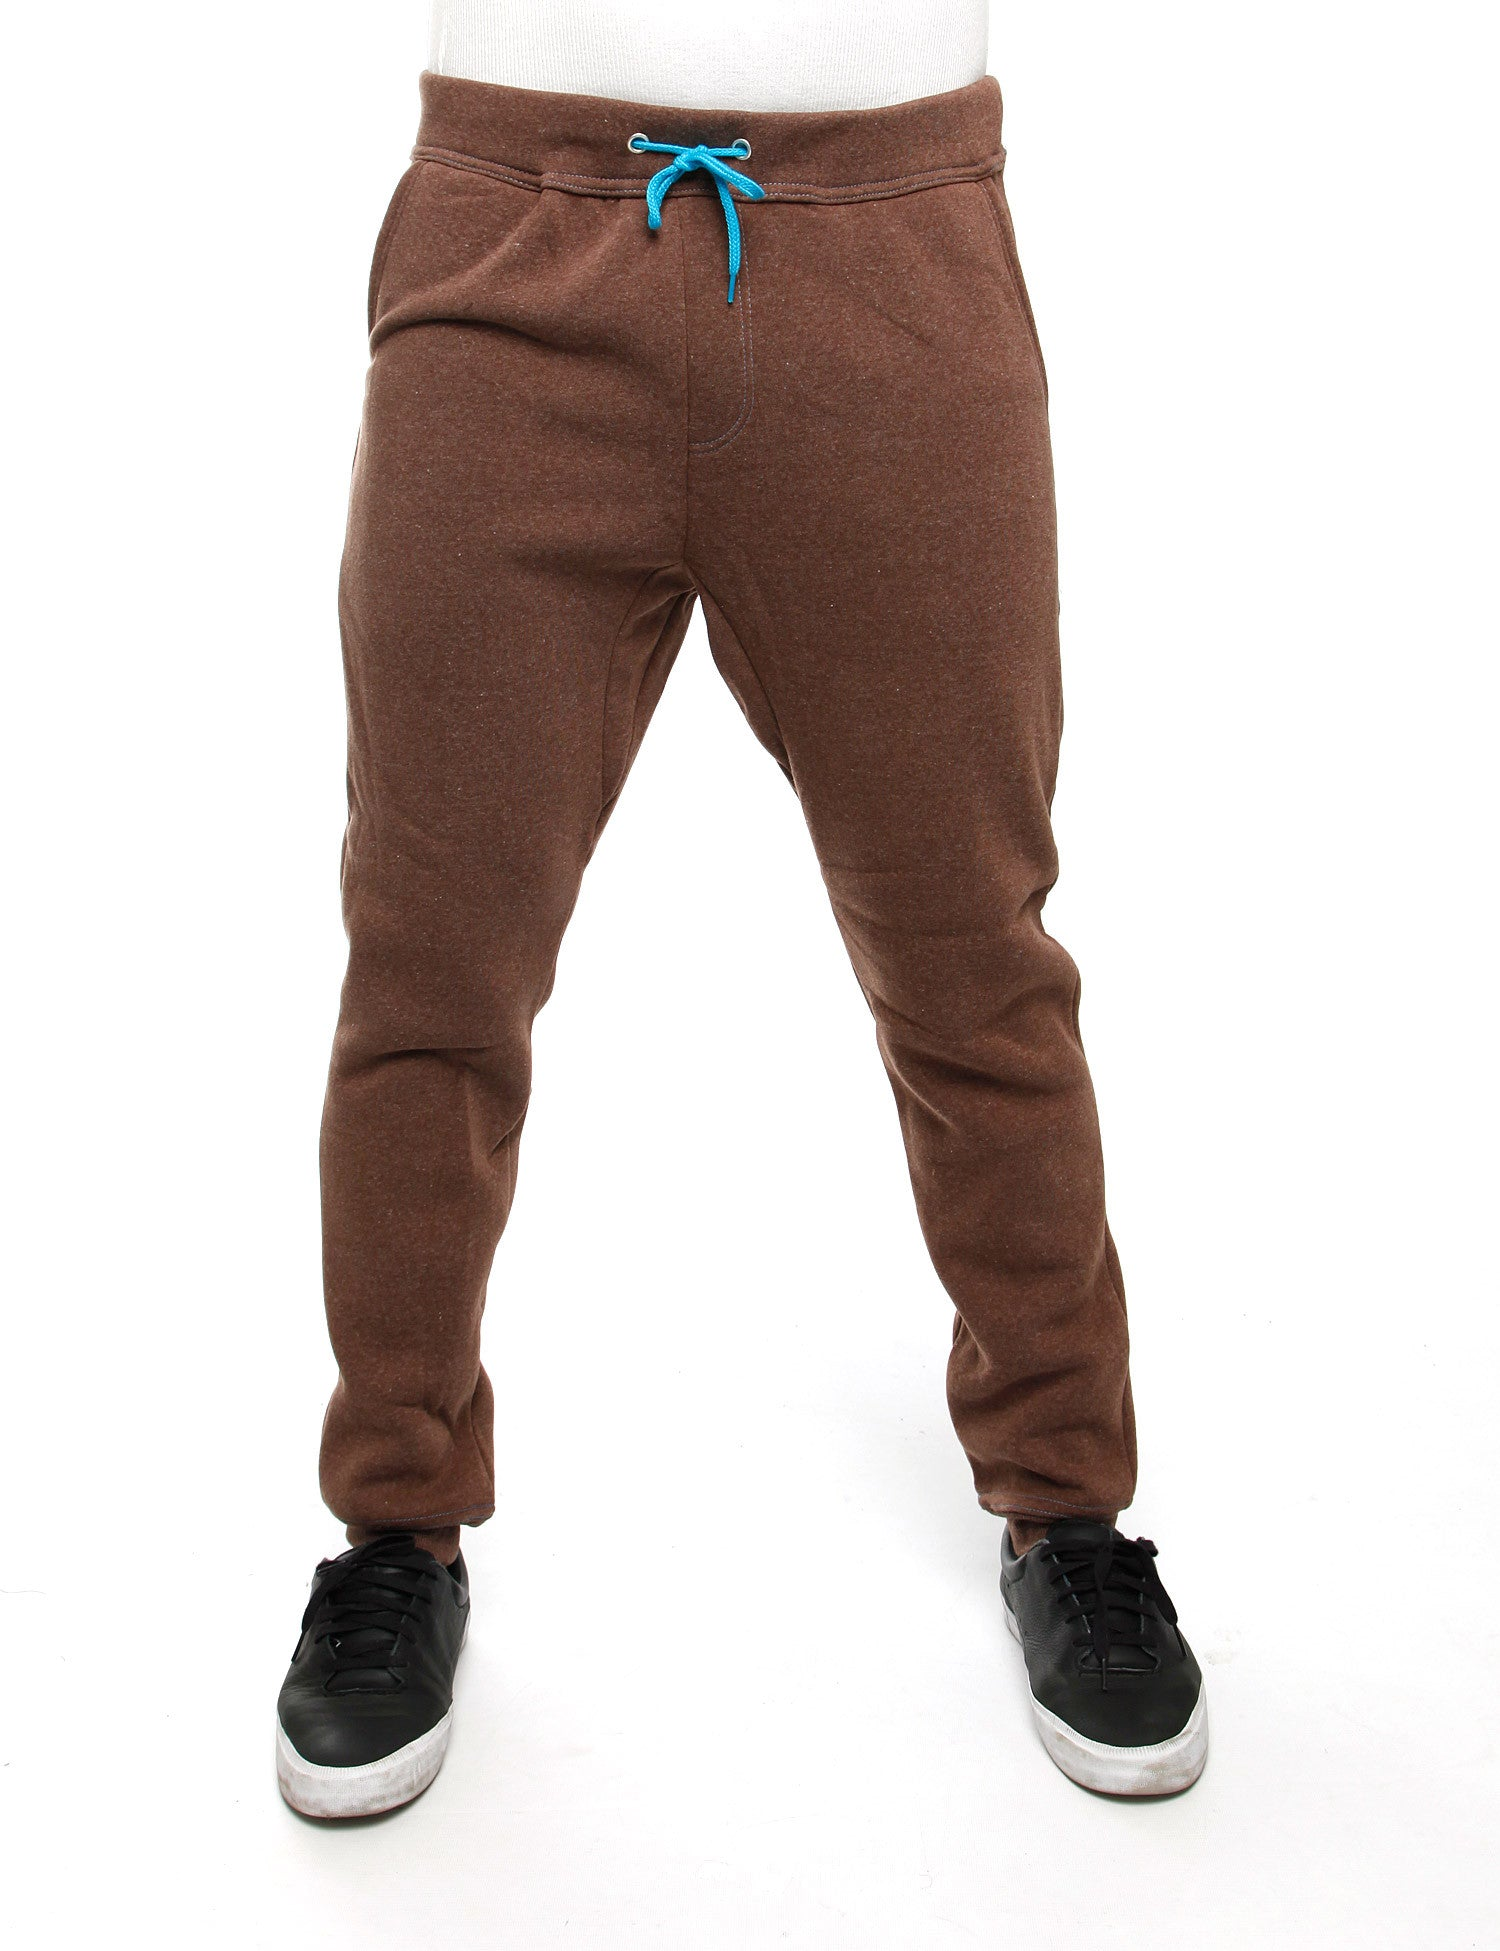 Royal Blue Sweatpants 44013P Brown